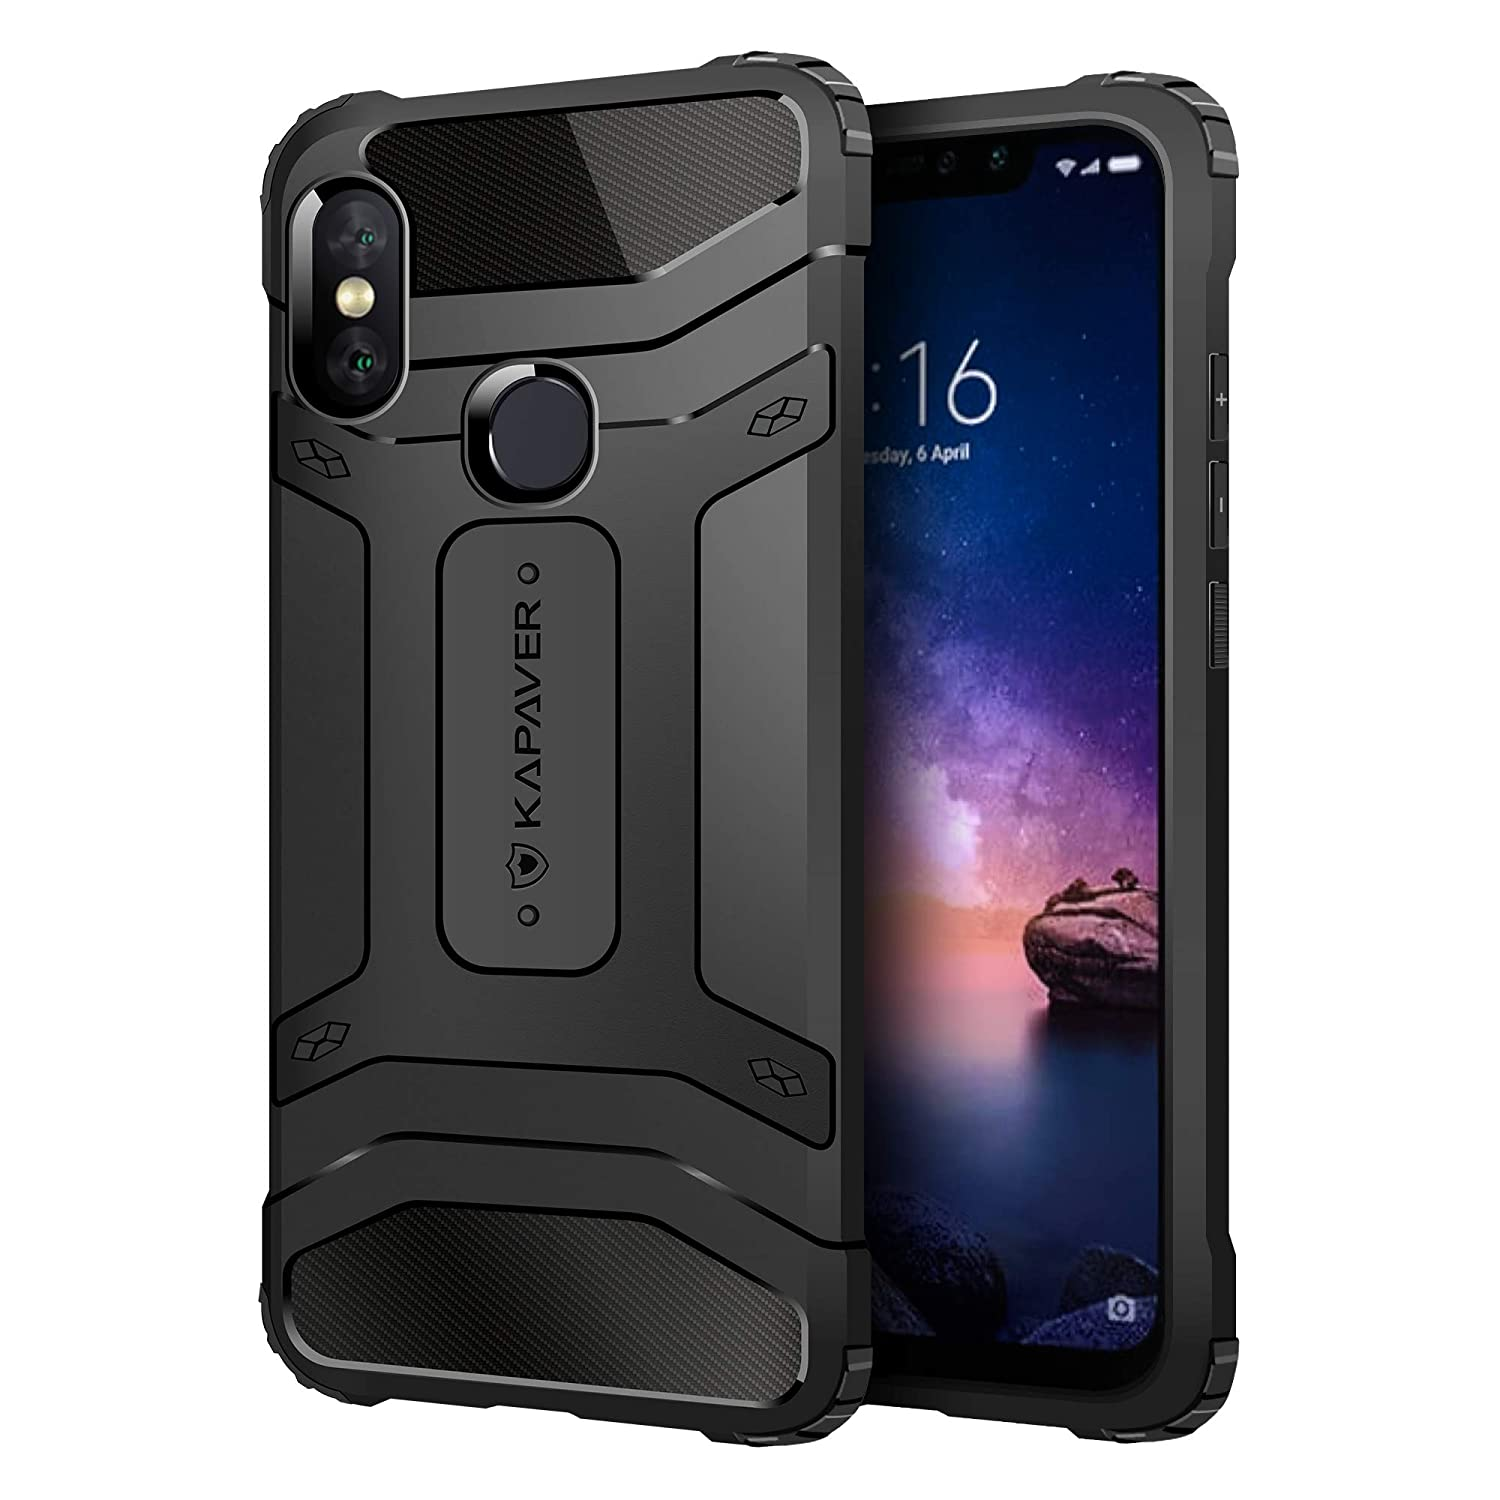 outlet store 47d5b 17688 KAPAVER® Xiaomi Redmi Note 6 Pro Rugged Back Cover Case MIL-STD 810G  Officially Drop Tested Solid Black Shock Proof Slim Armor Patent Design  (Only ...